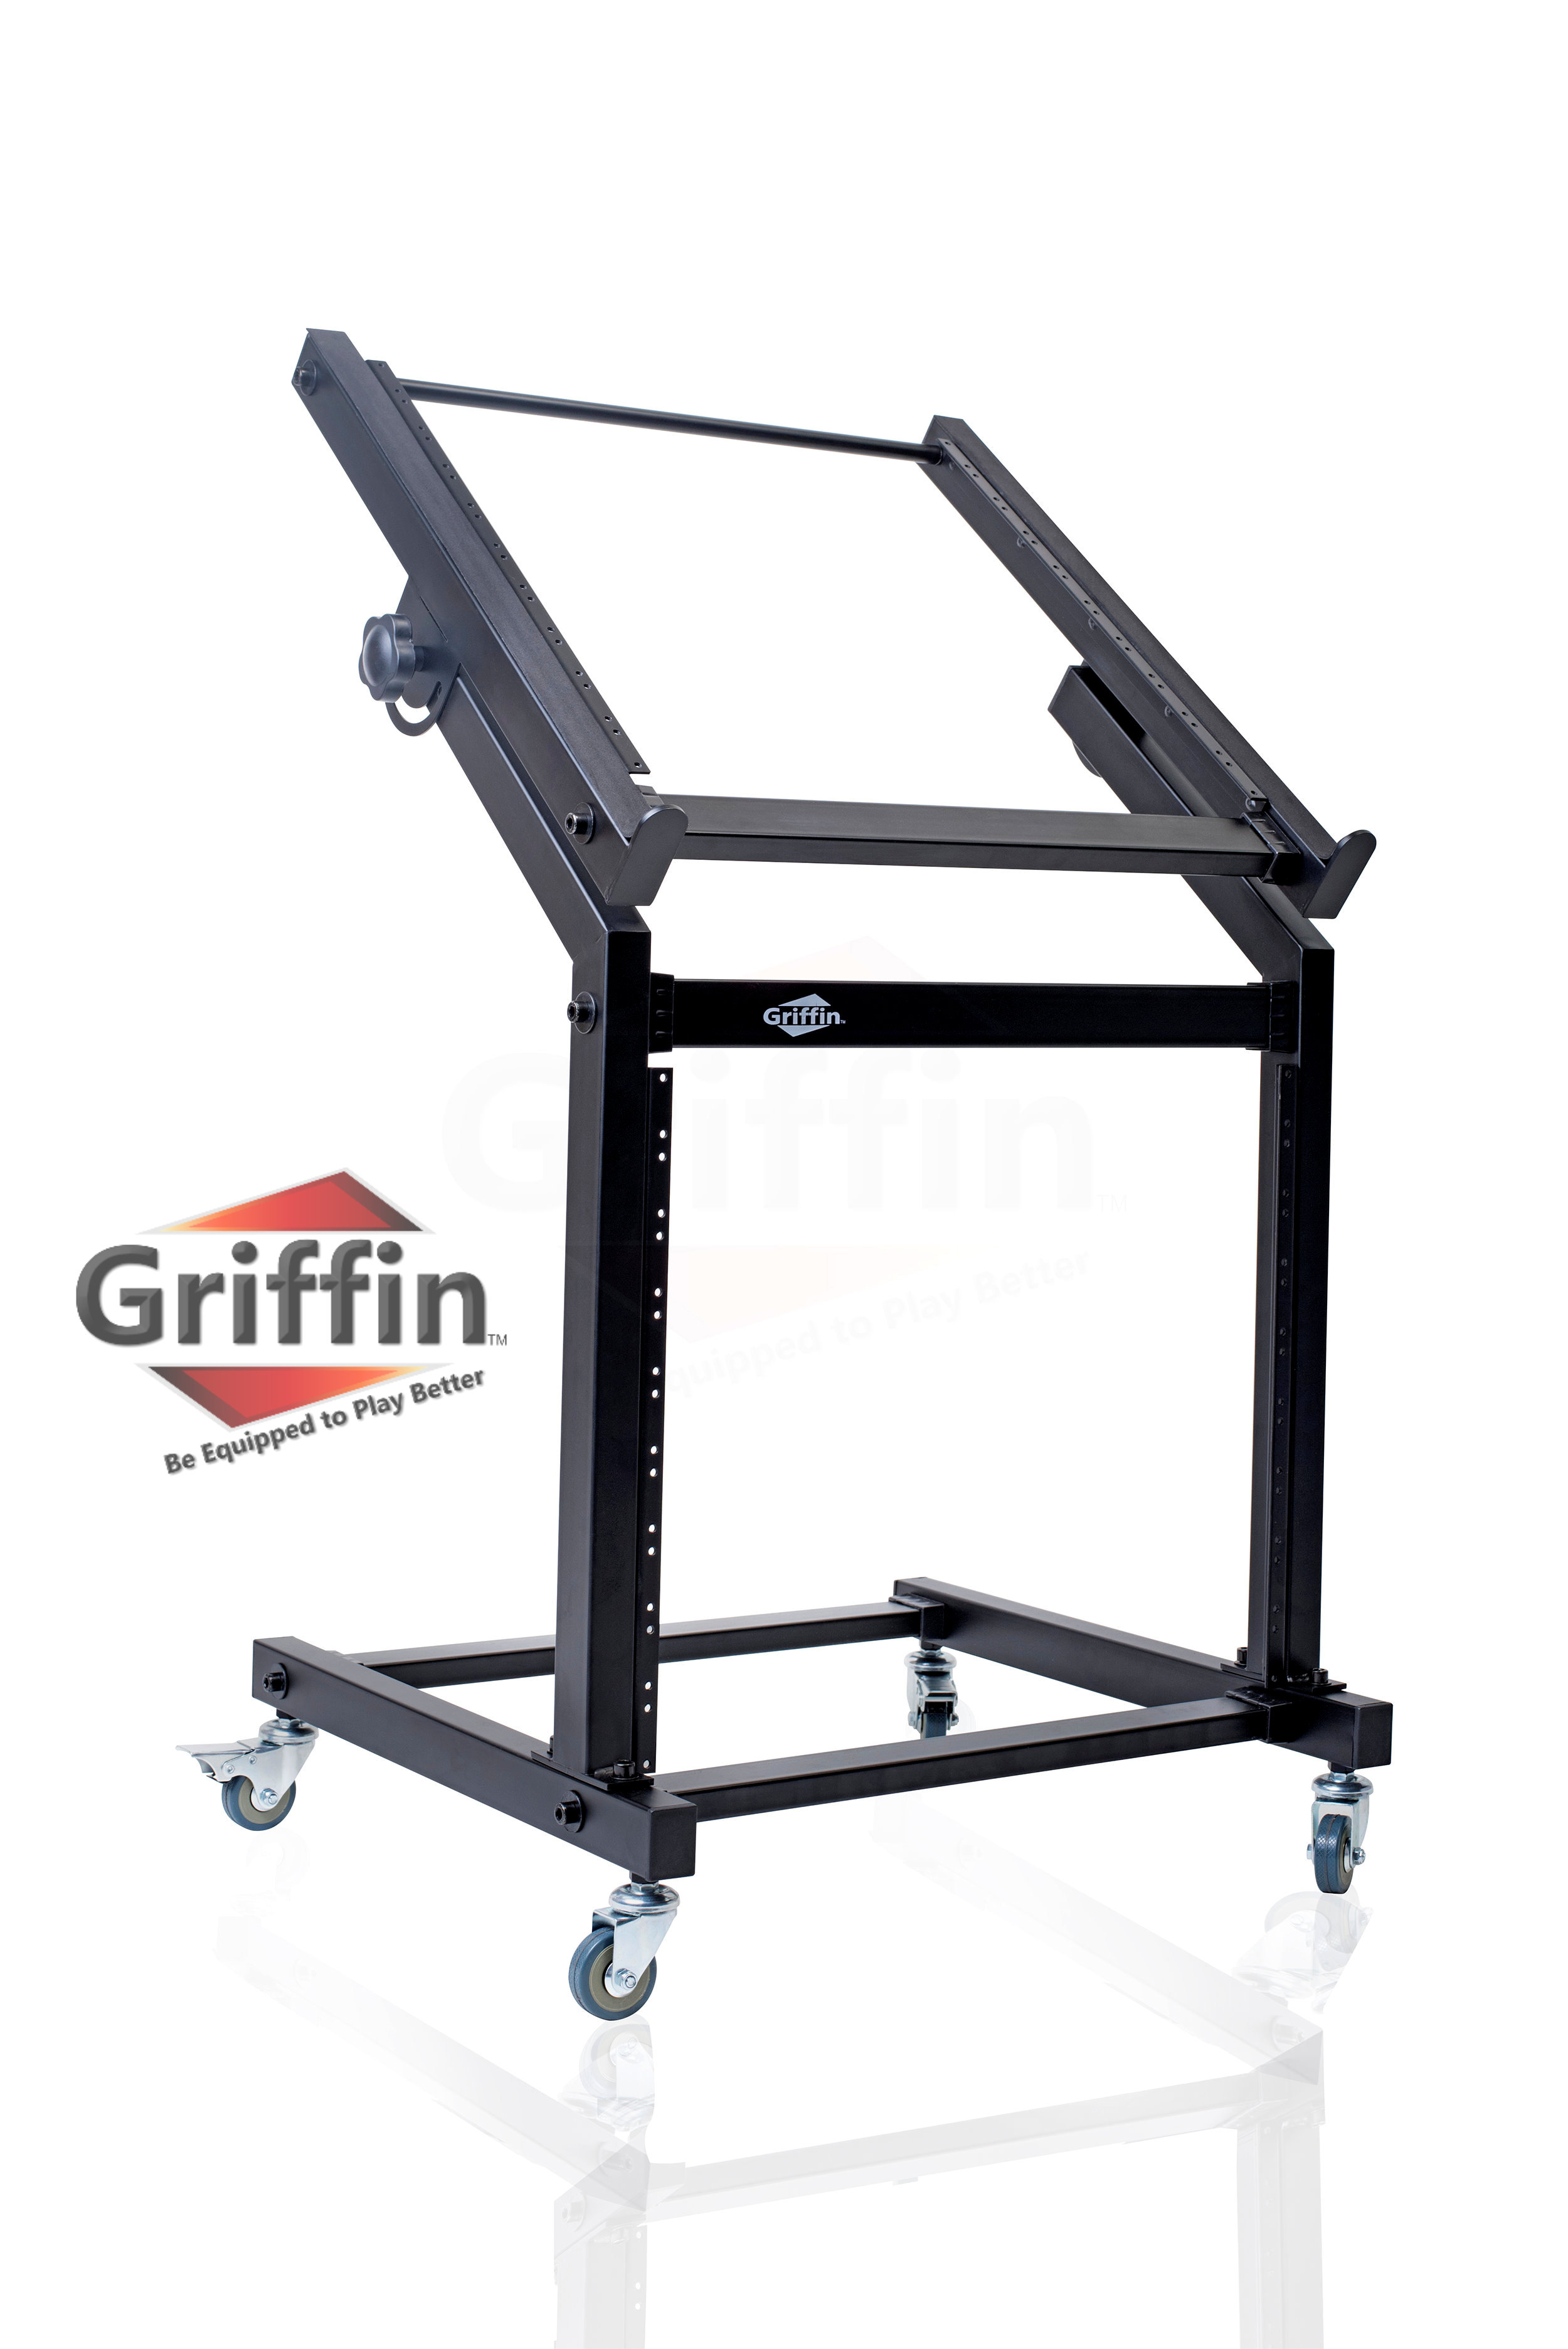 Rack Mount Rolling Stand and Adjustable Top Mixer Platform Mount 19U by Griffin Cart Holder for Music Studio Pro Audio... by Griffin